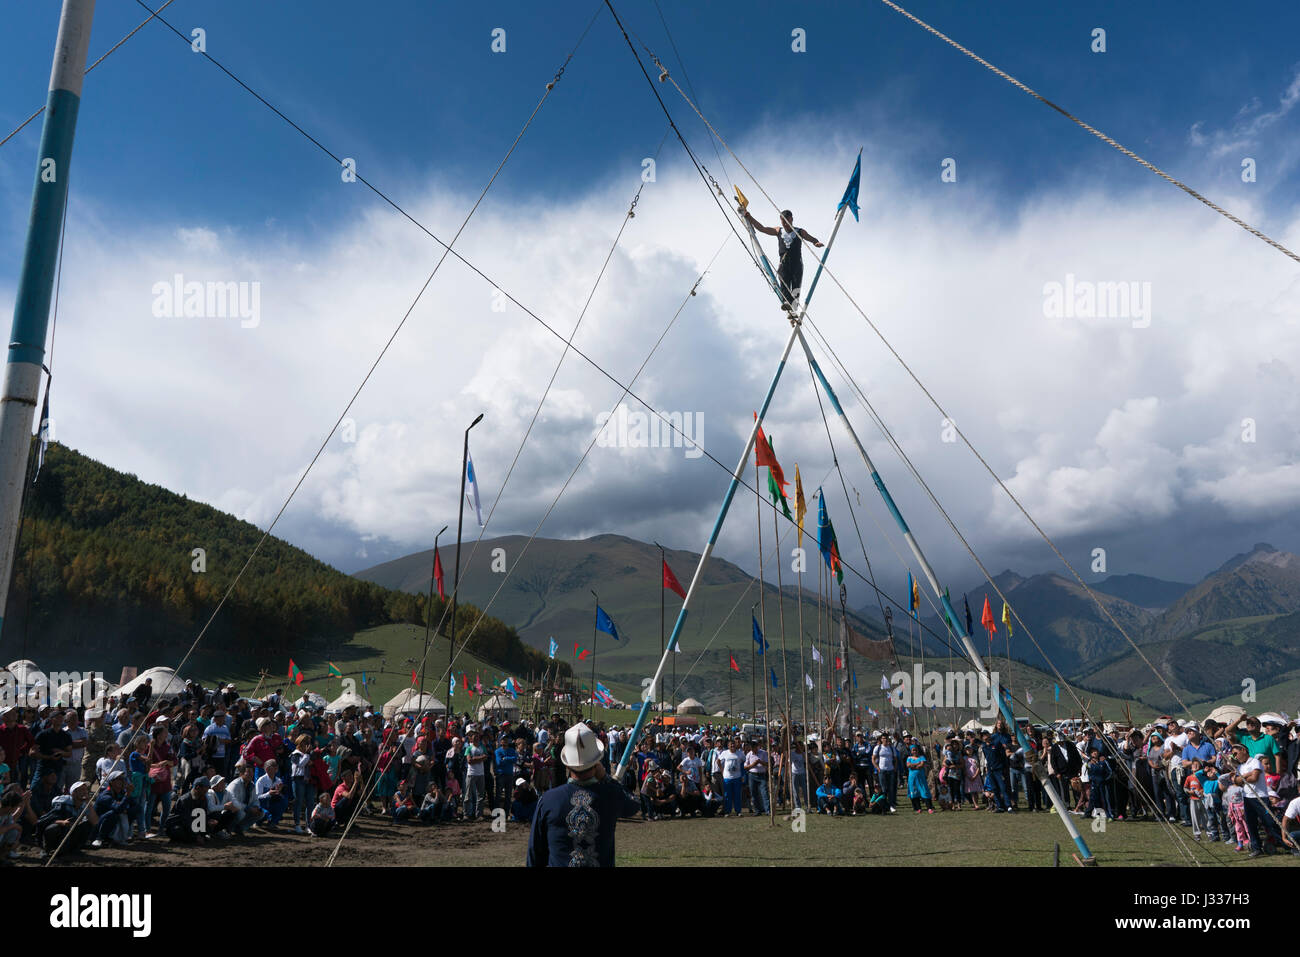 An Uzbek tightrope performer walks above the crowd at Kyrchyn Gorge at last week's World Nomad Games in Kyrgyzstan. - Stock Image